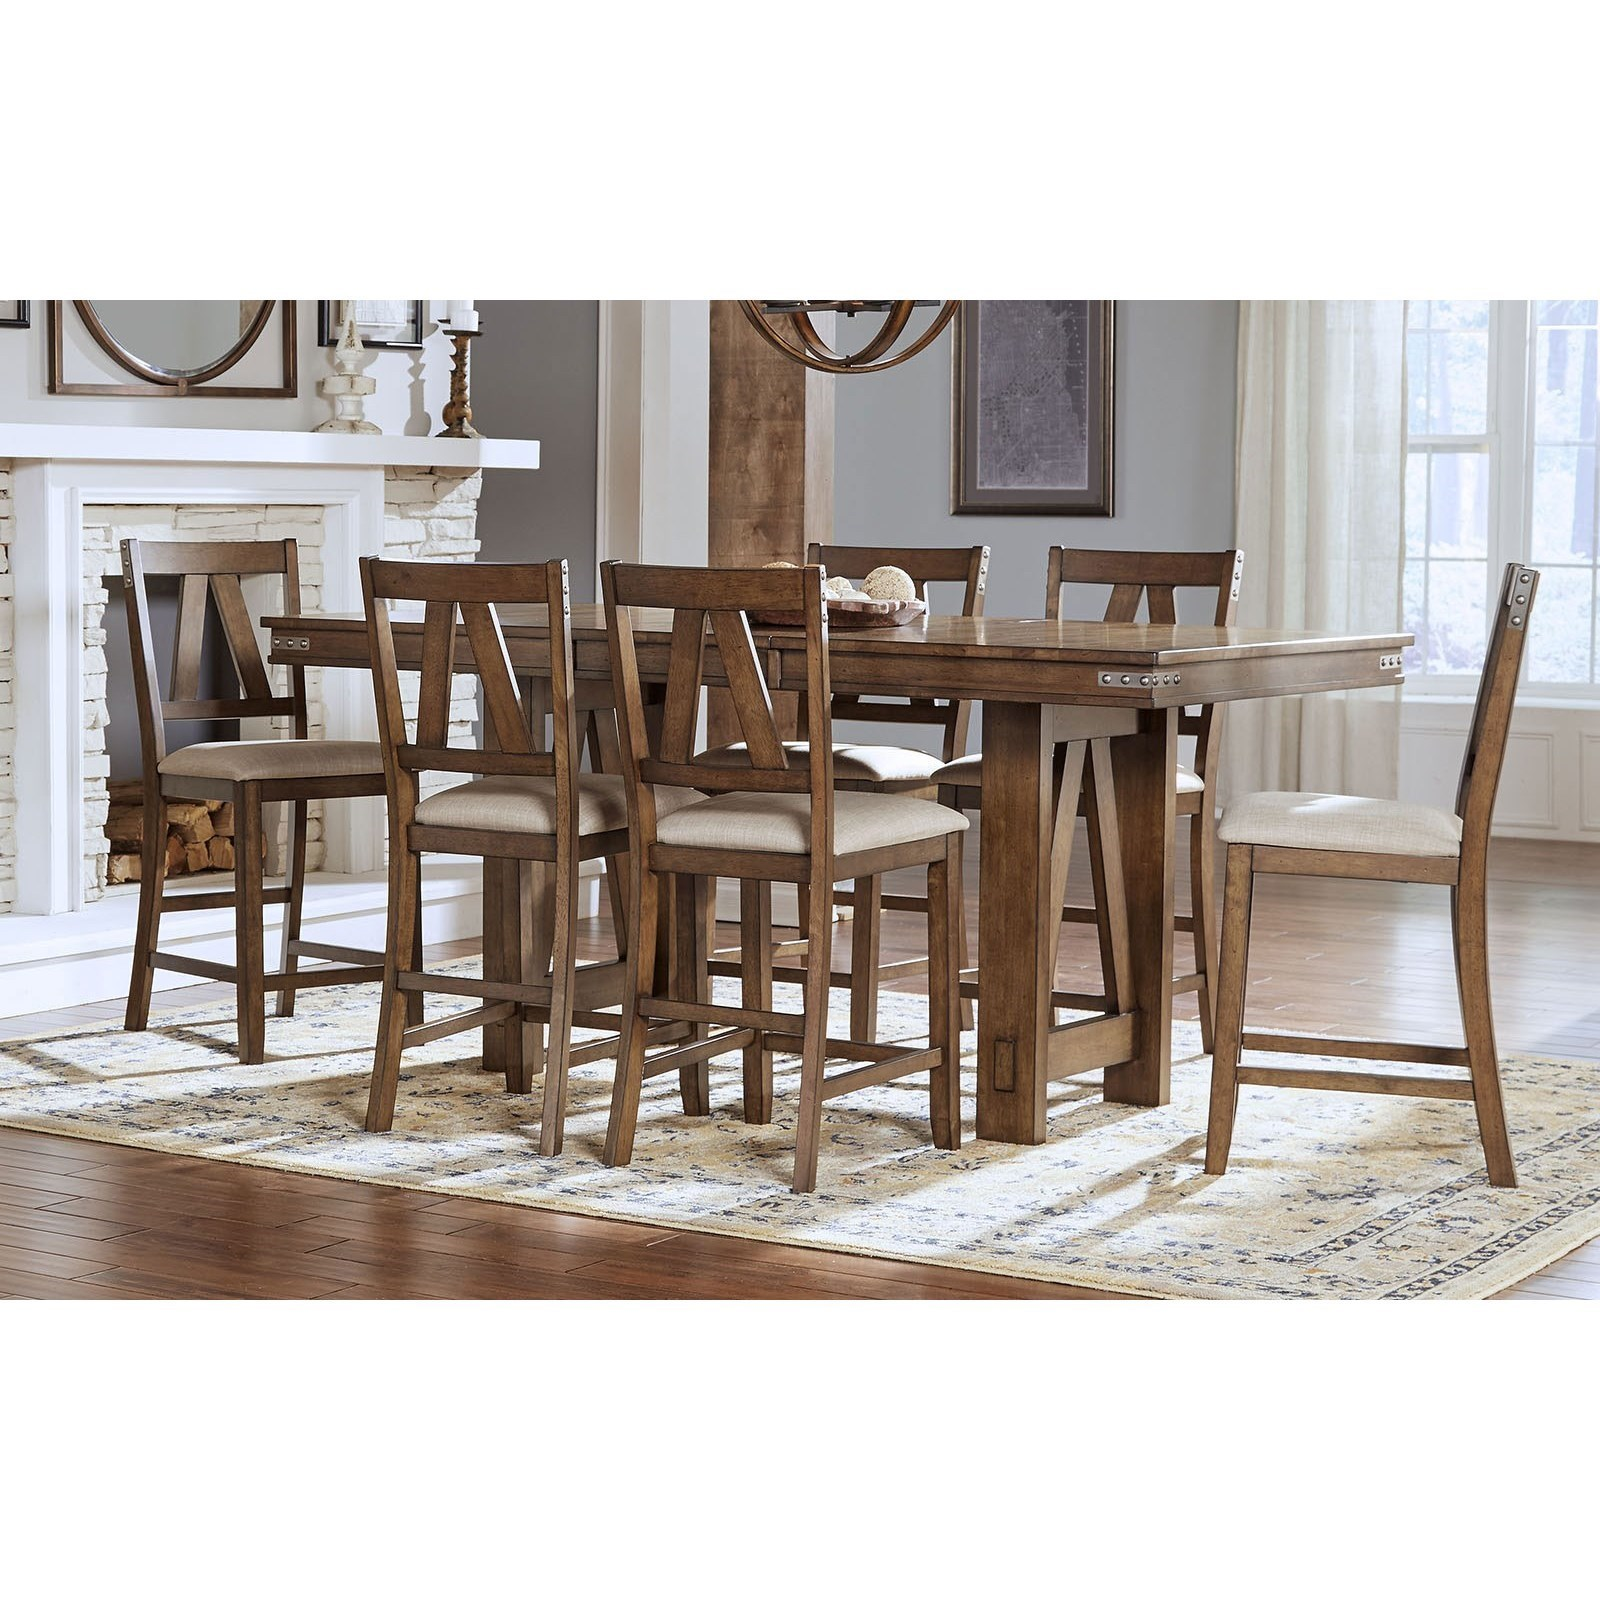 Attrayant AAmerica Eastwood DiningCounter Height Table And 6 Side Chairs ...